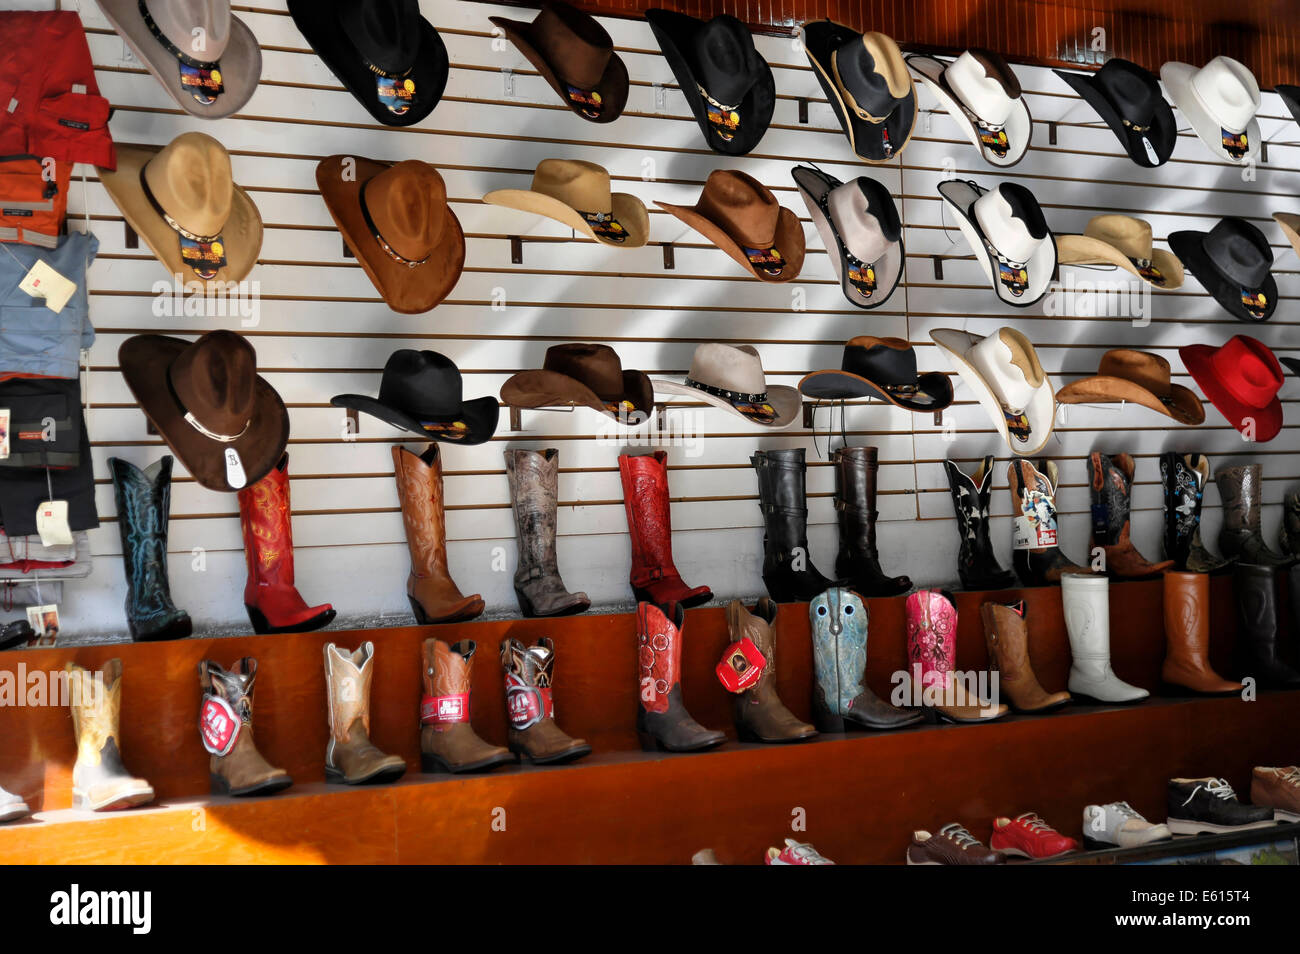 Leather boots and hats 11f685dd8e8